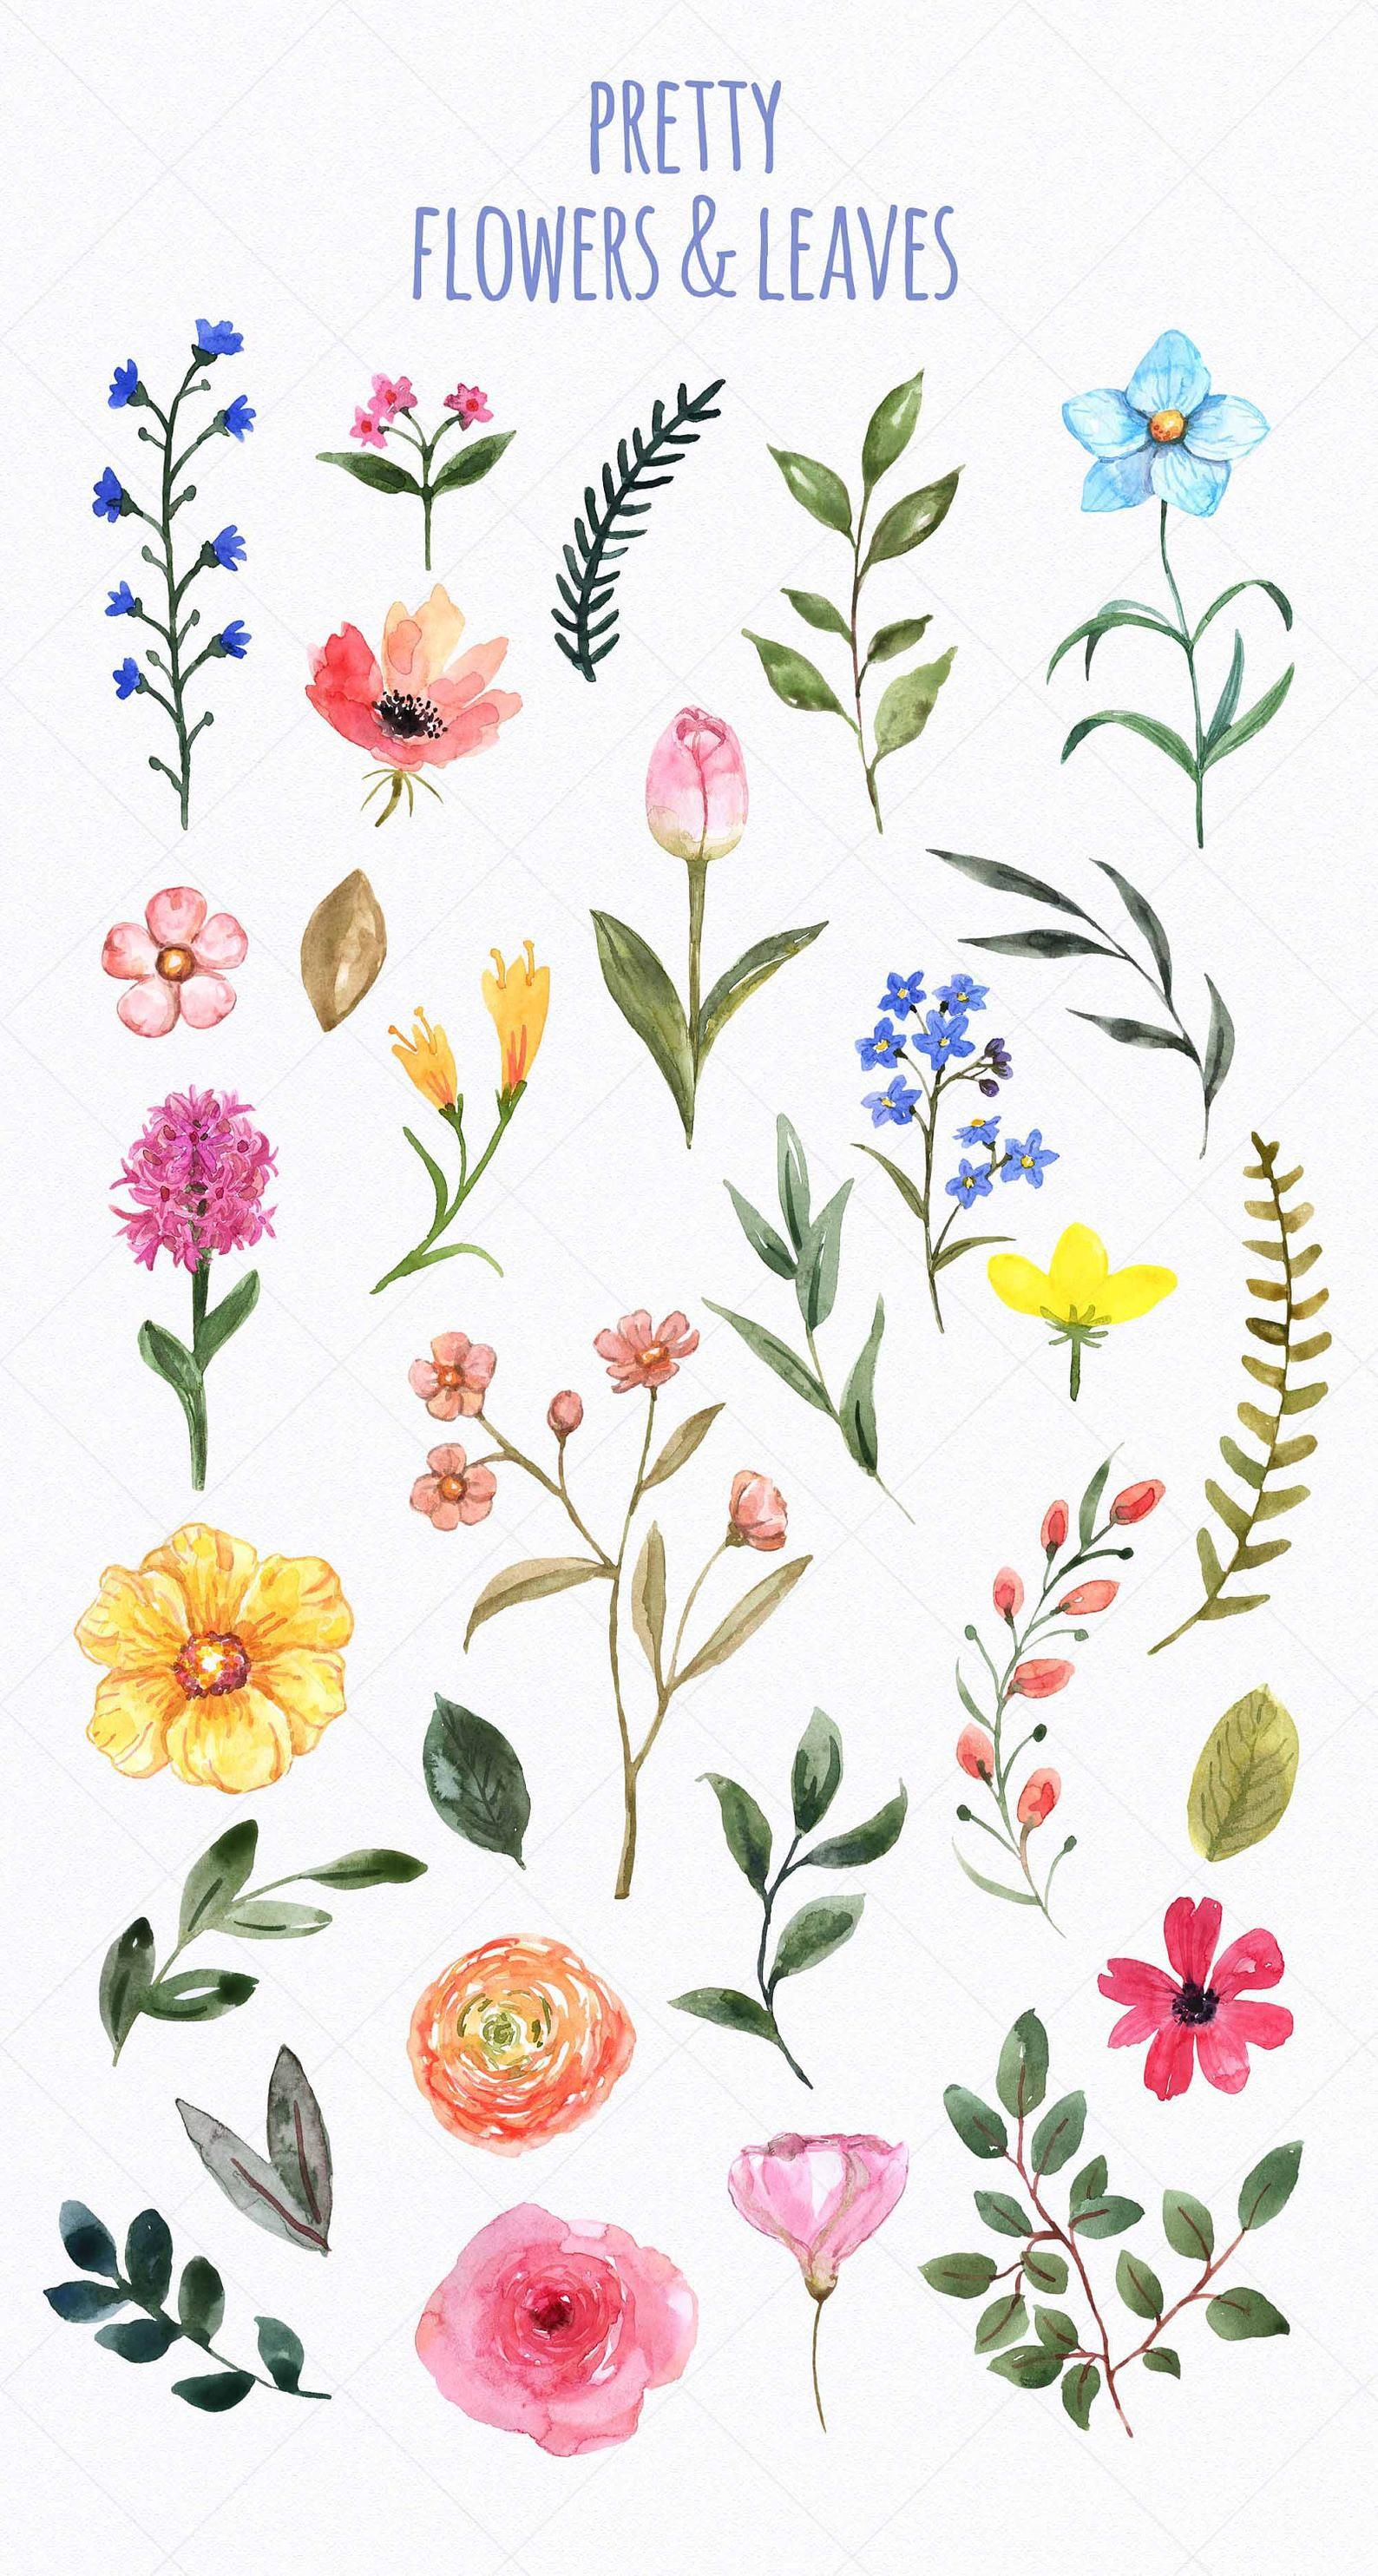 Watercolor Wildflowers Clip art Spring Cute Floral Clipart Botanical Flowers Summer Wild Flowers Leaves PNG Printable Illustration Garden